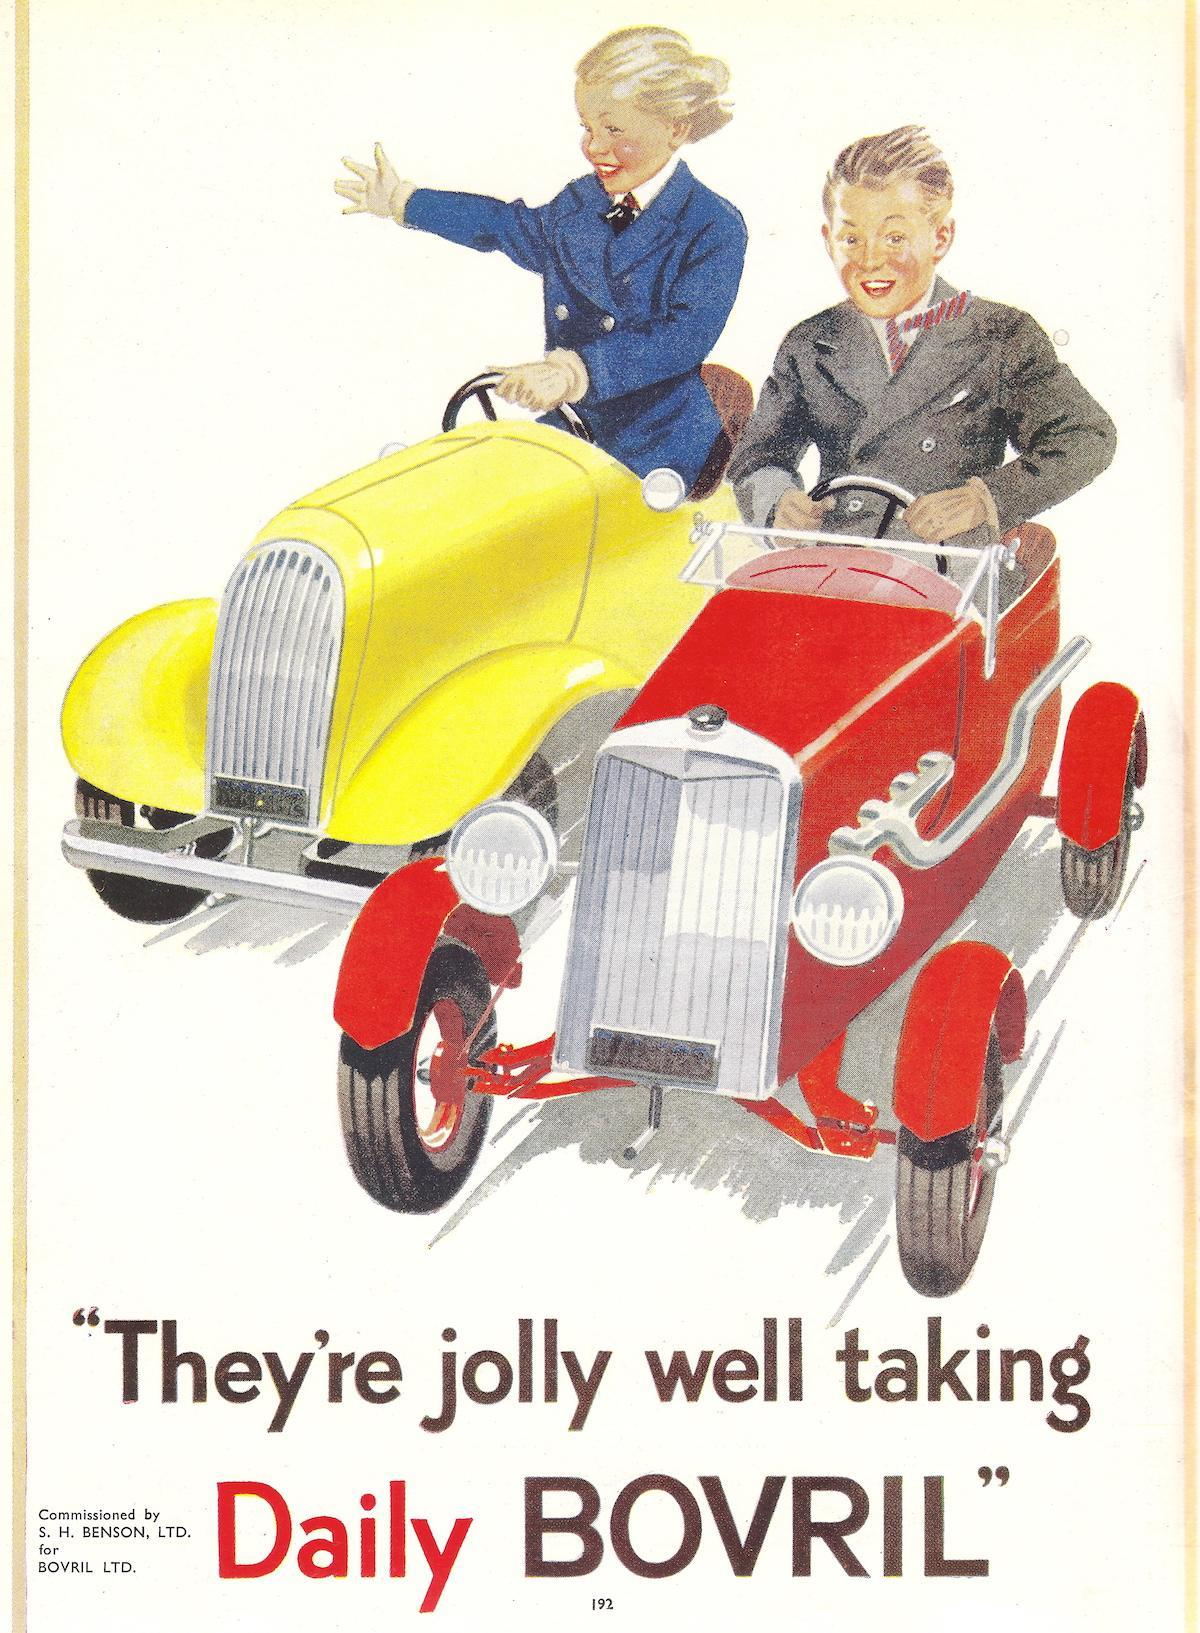 They're jolly well taking Daily Bovril - advert - 1939